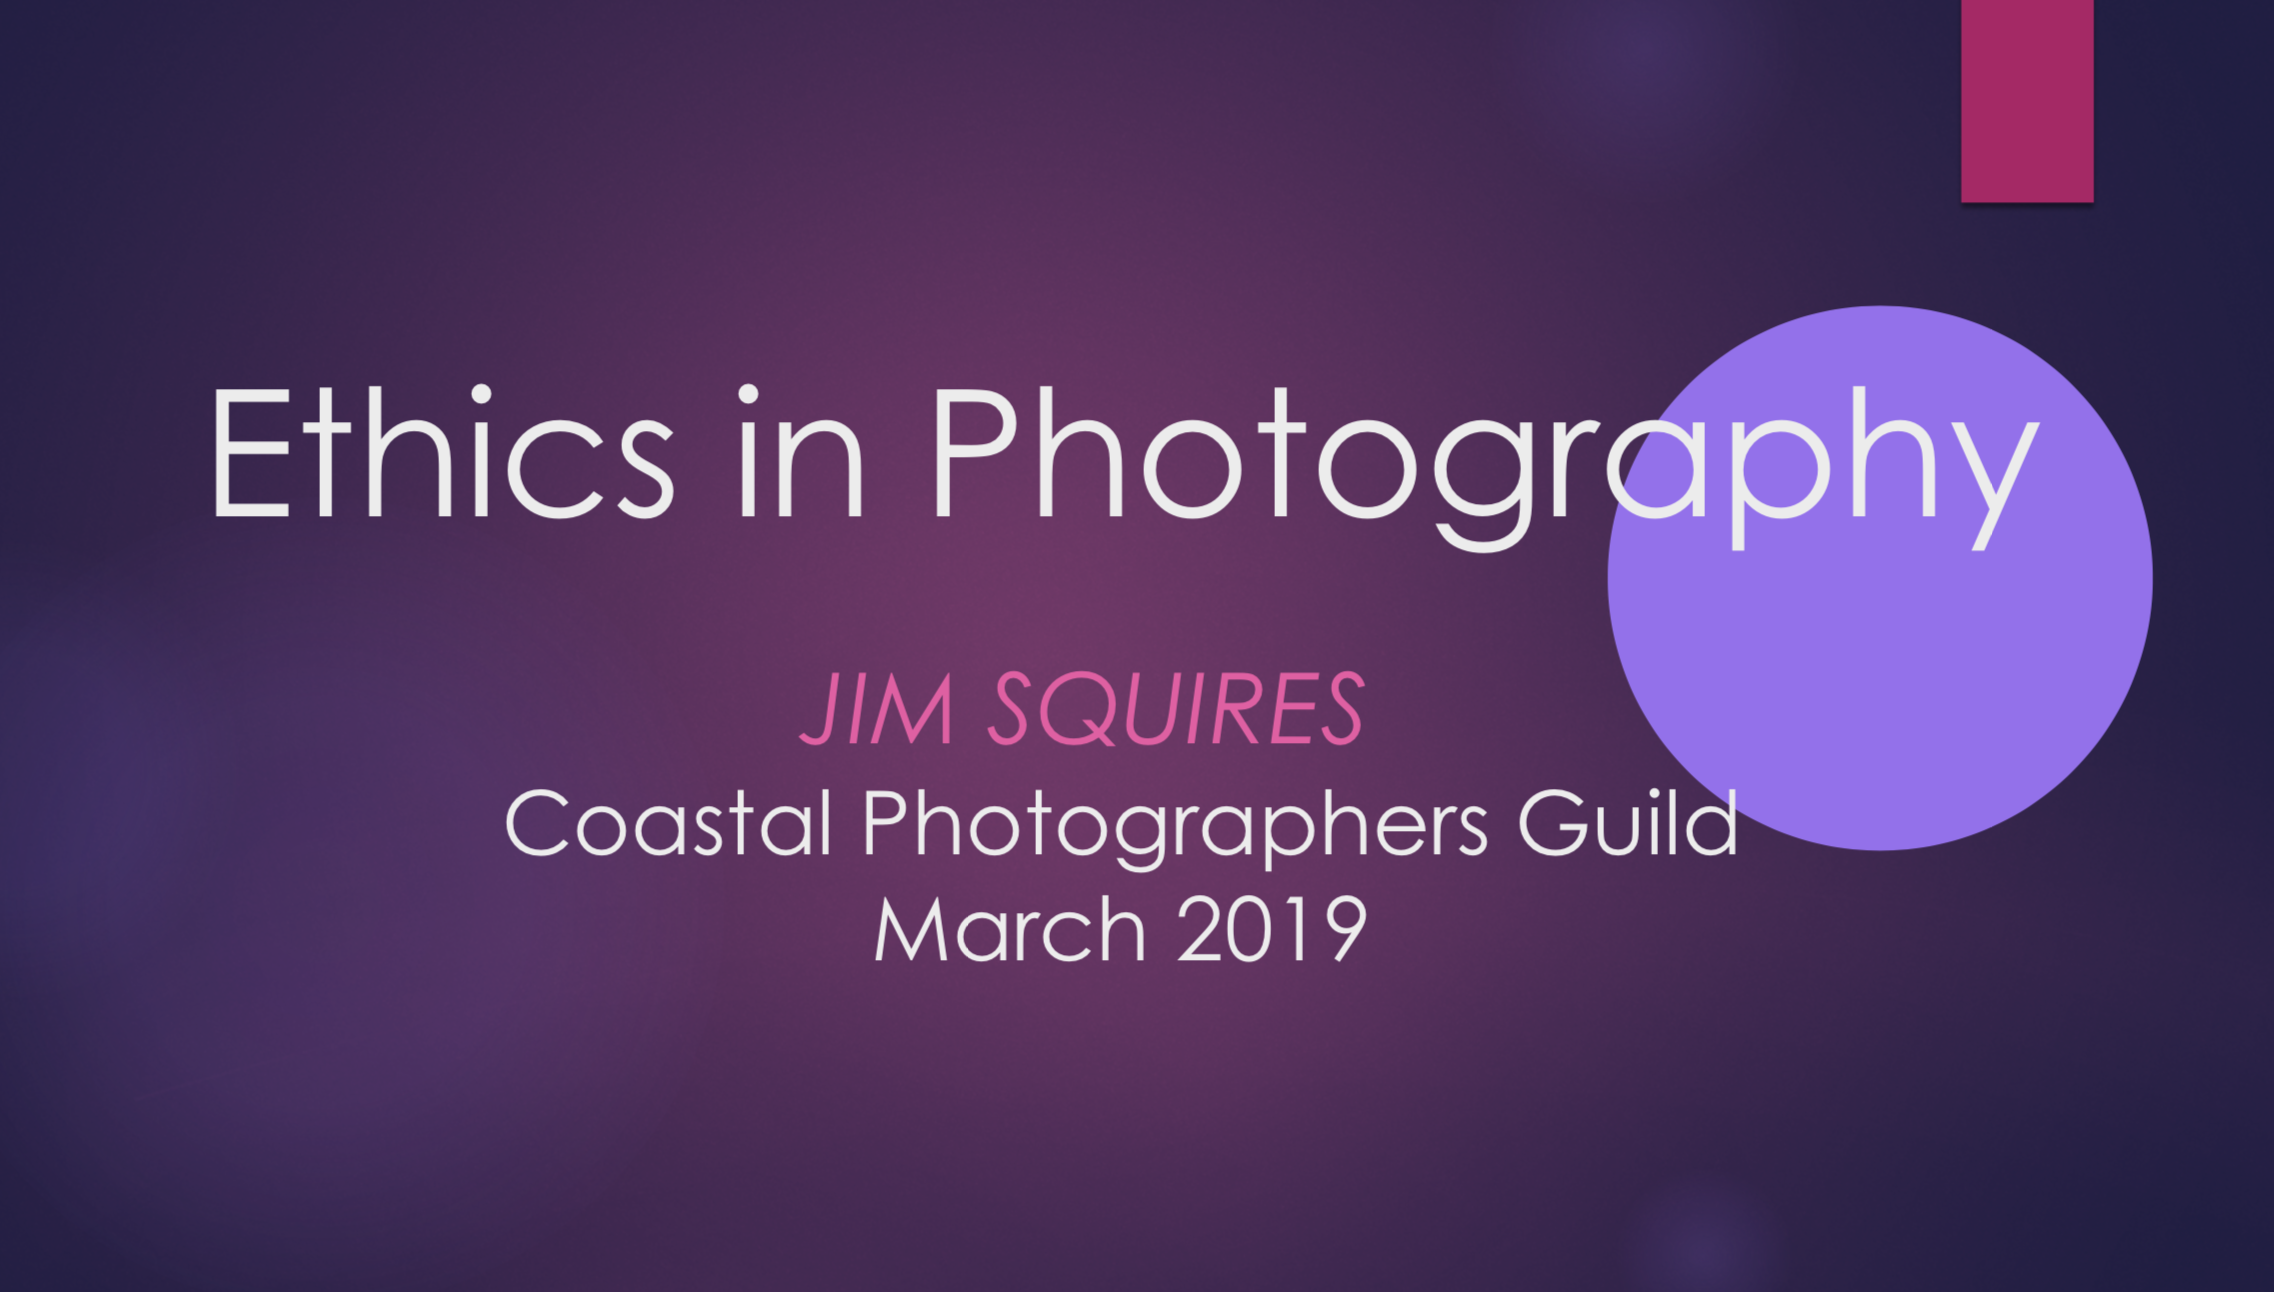 Ethics in Photography - Whether you're photographing strangers on the street or baby birds, this presentation by Jim Squires will help you with what you need to know about ethical photography.